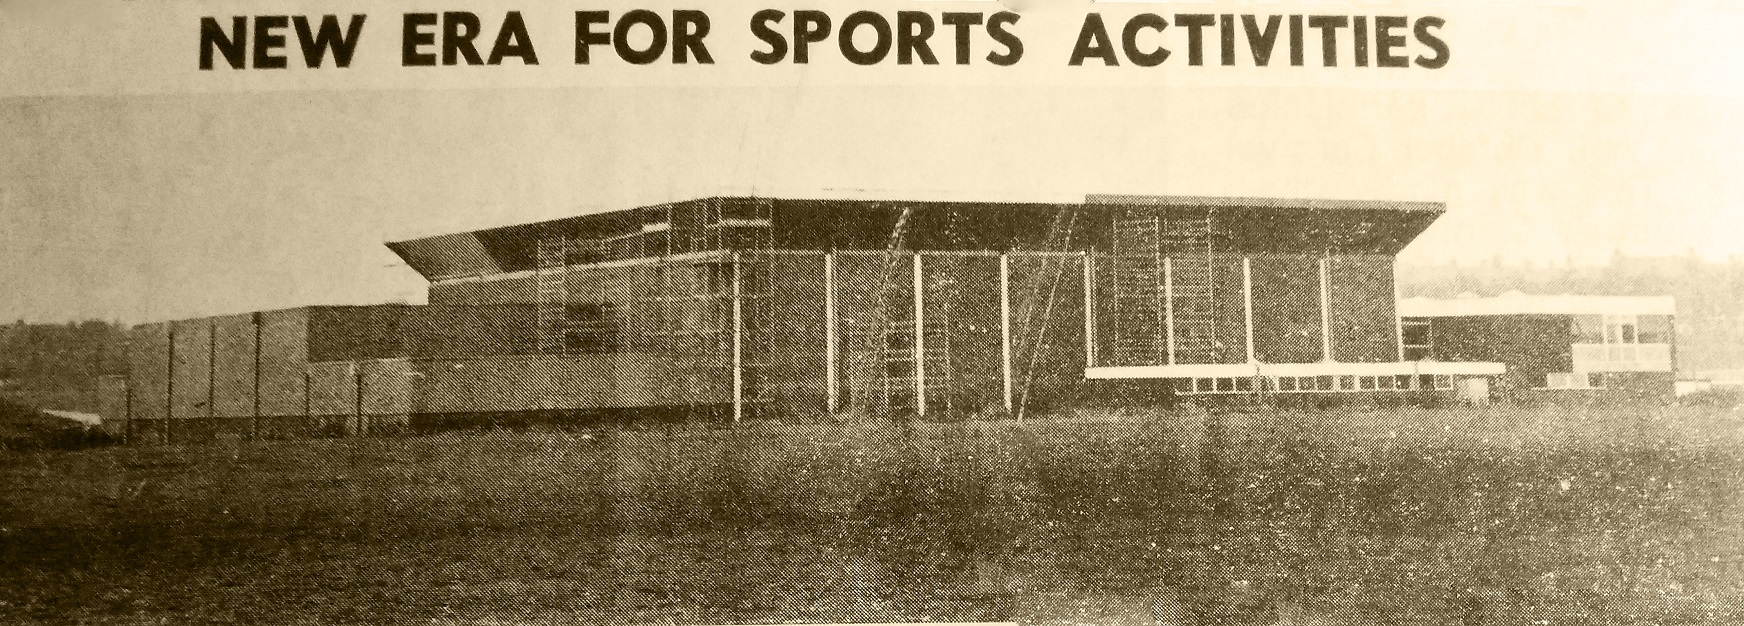 Consett Sport Centre 1975-2015 during Construction in 1974 small